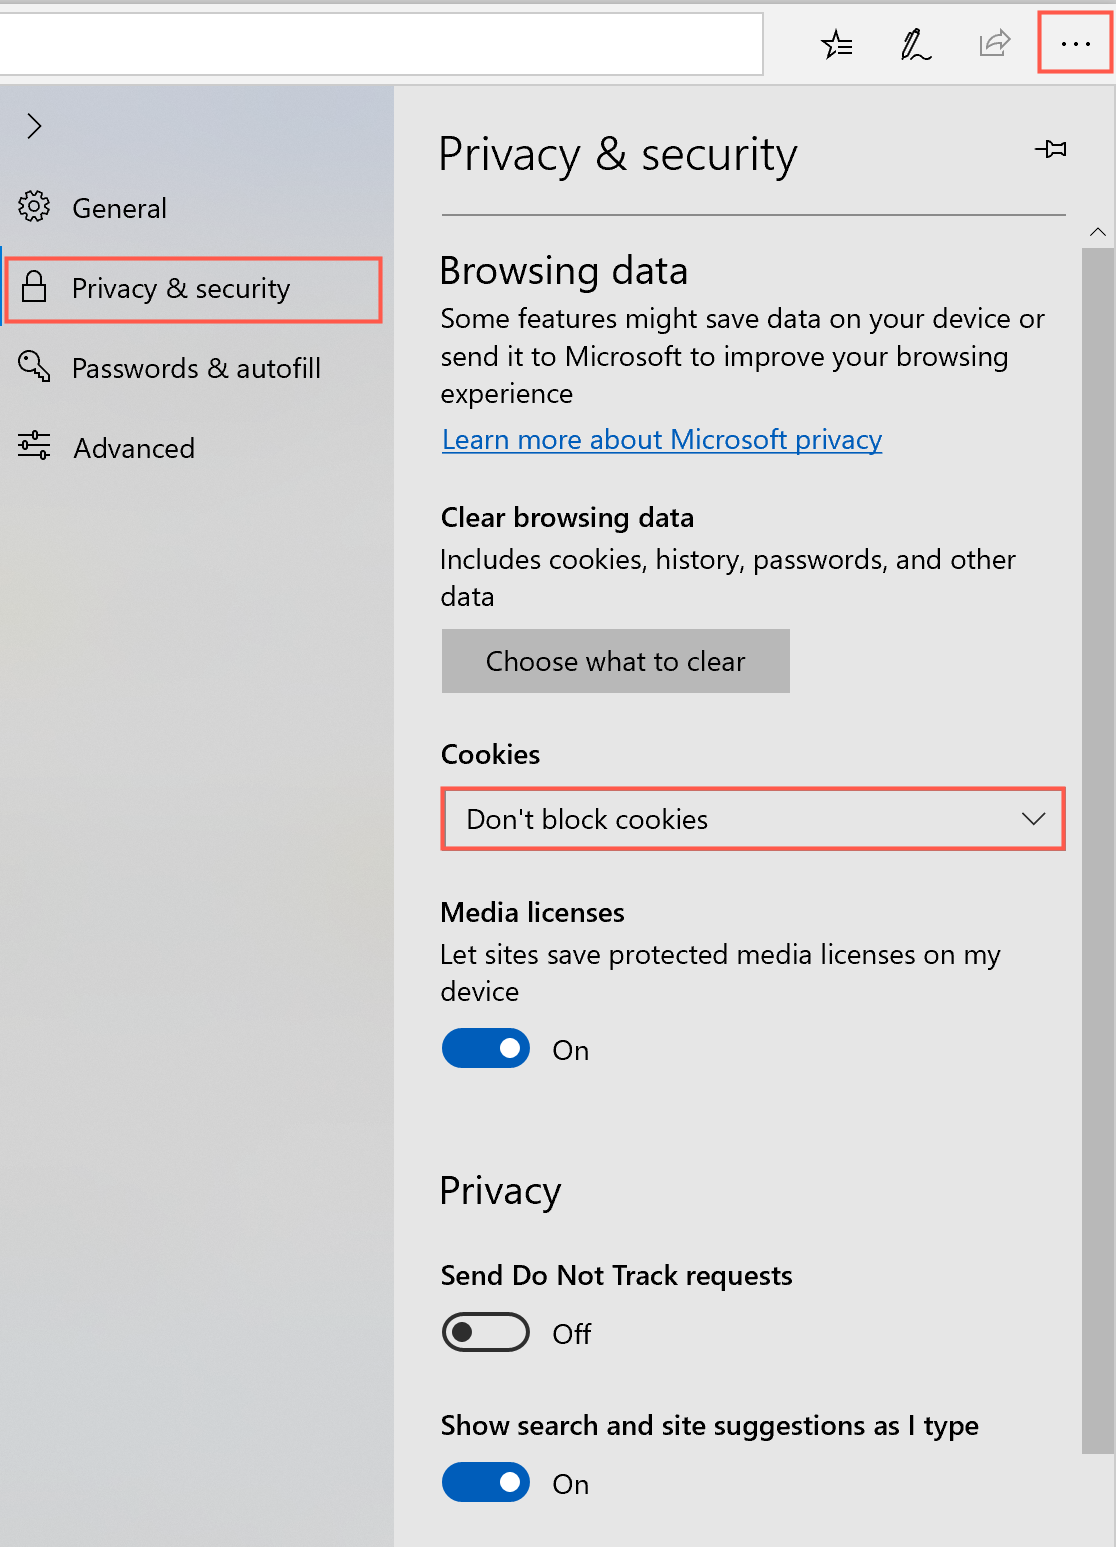 Ensure third party cookies are not blocked in Microsoft Edge